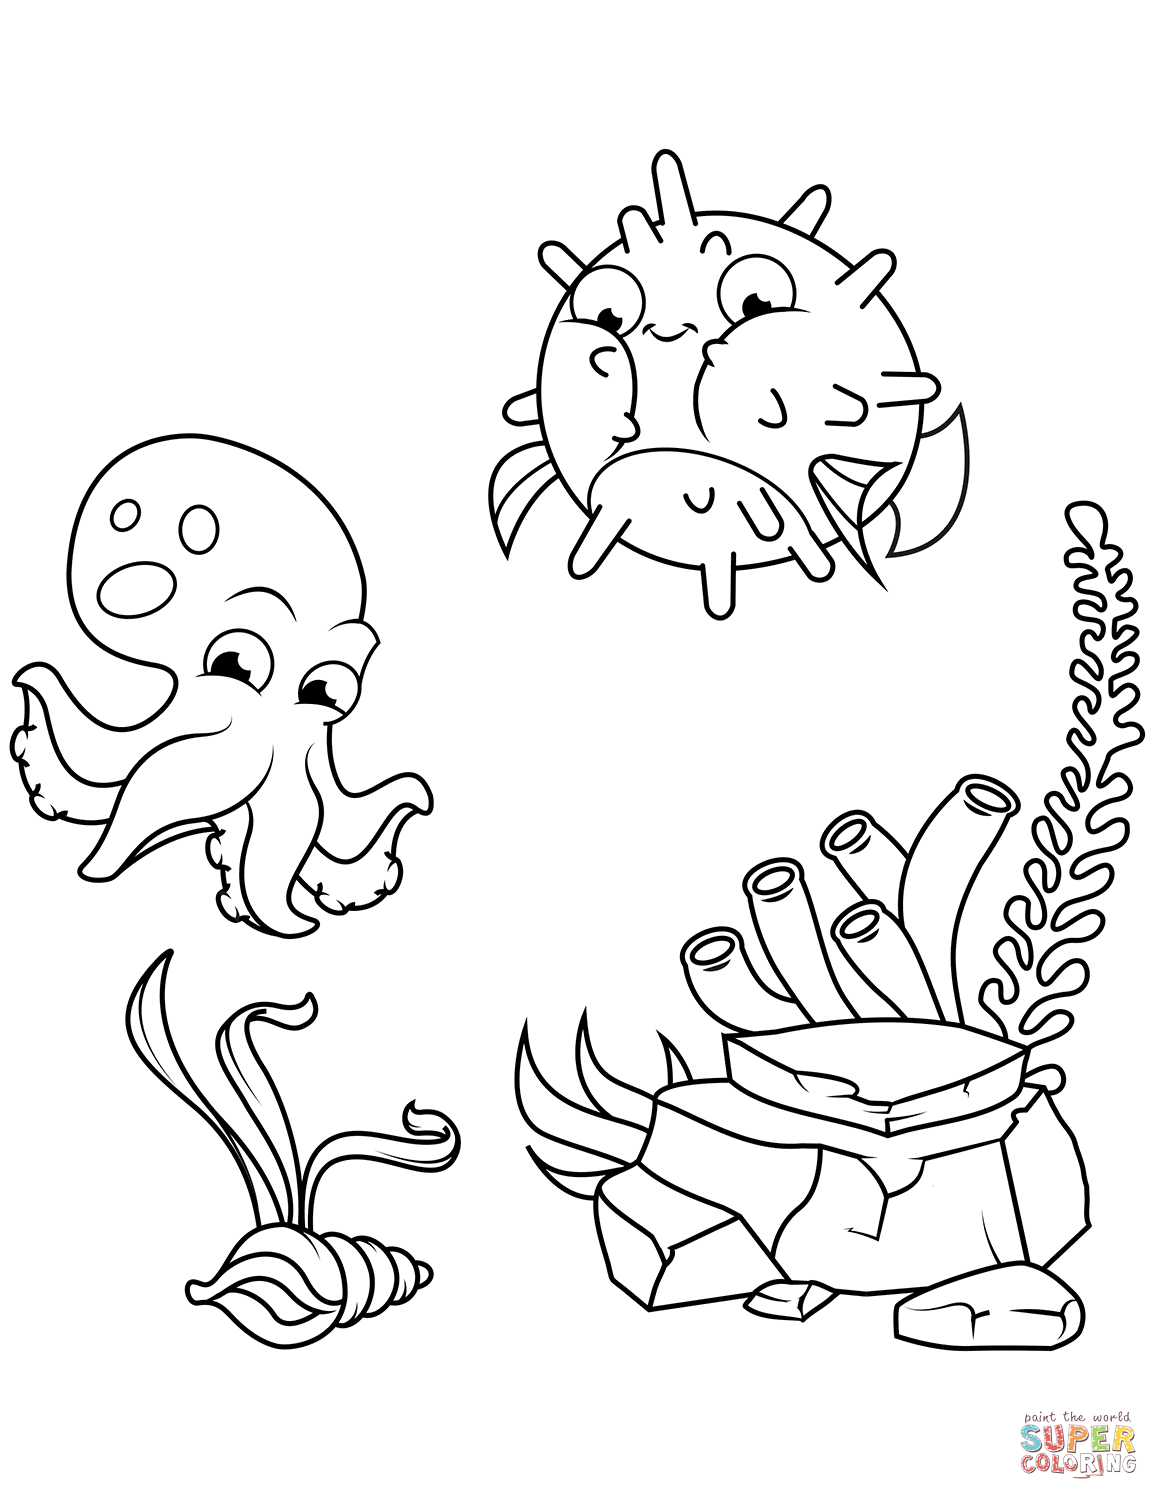 Octopus And Pufferfish Coloring Page Free Printable Coloring Pages